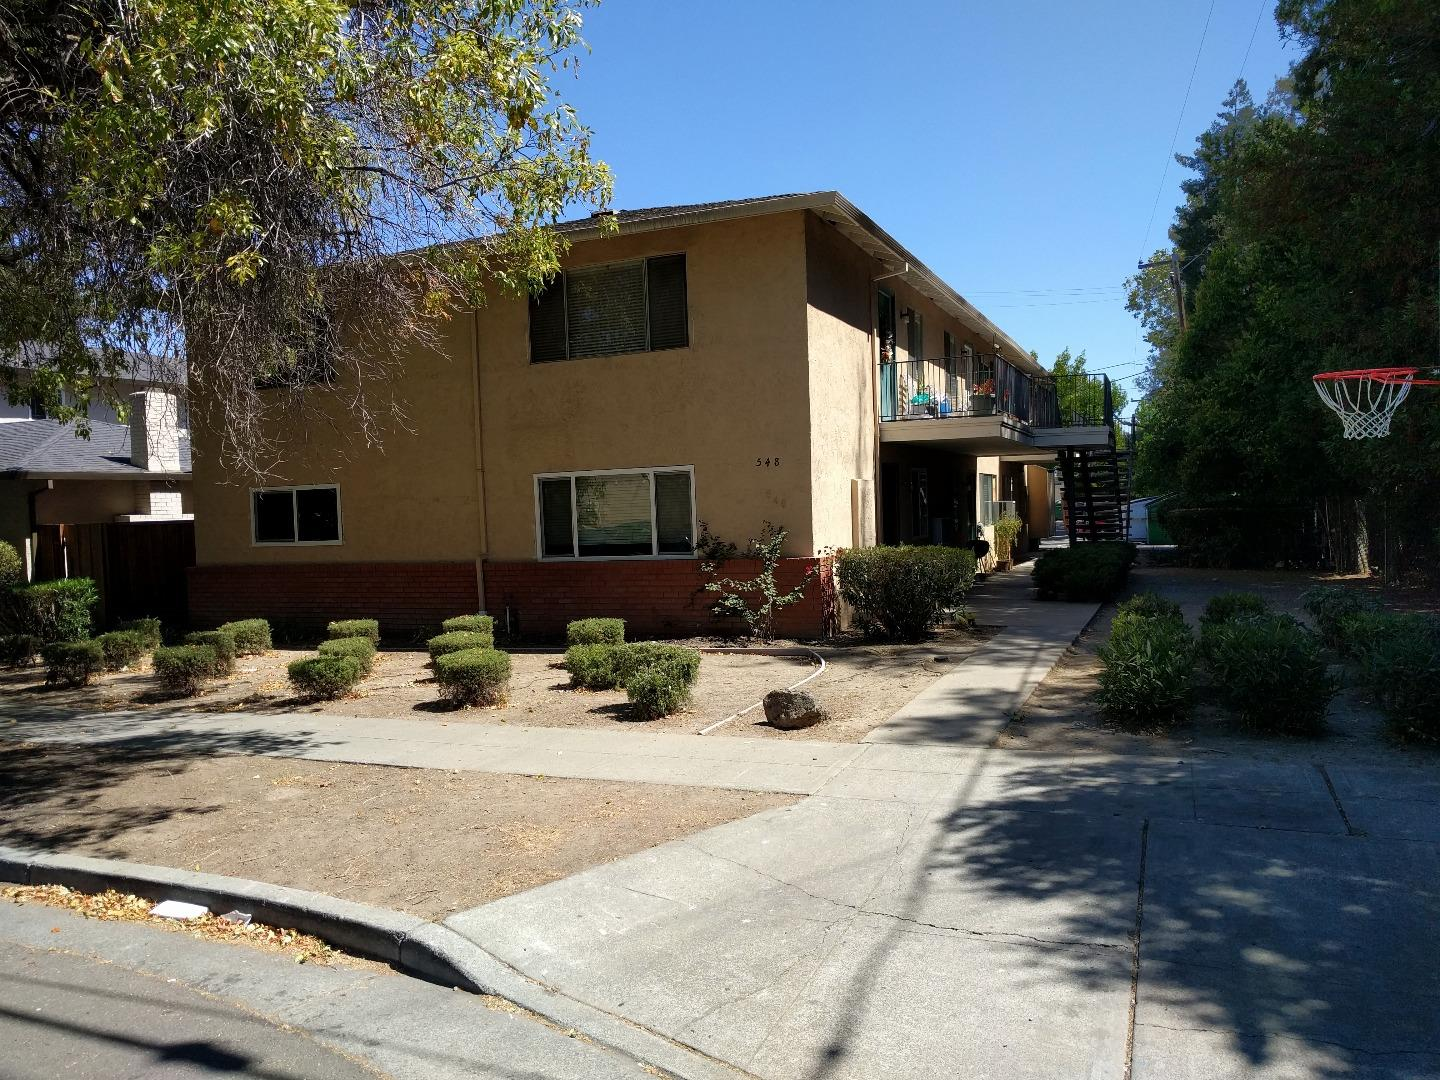 Additional photo for property listing at 548 Boynton Ave  SAN JOSE, CALIFORNIA 95117